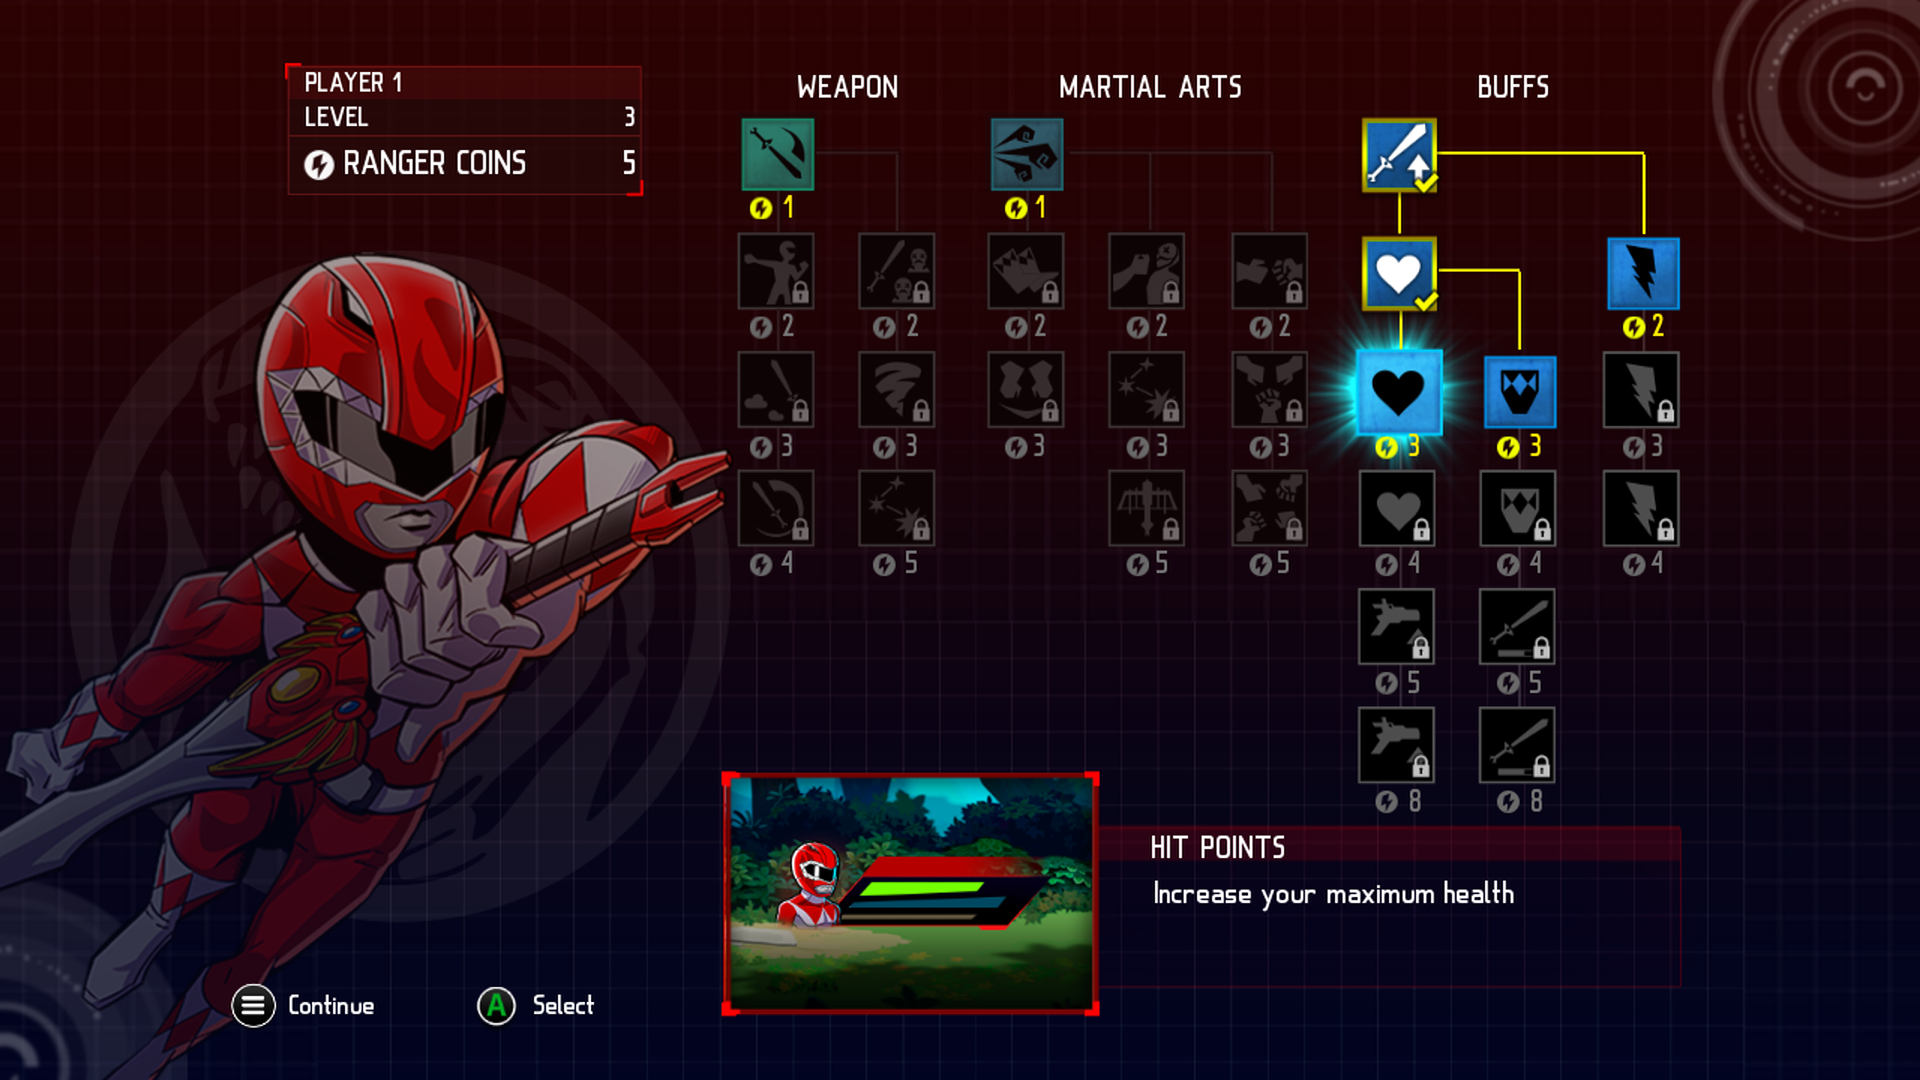 The skill tree provides a lot of options but most aren't very useful.